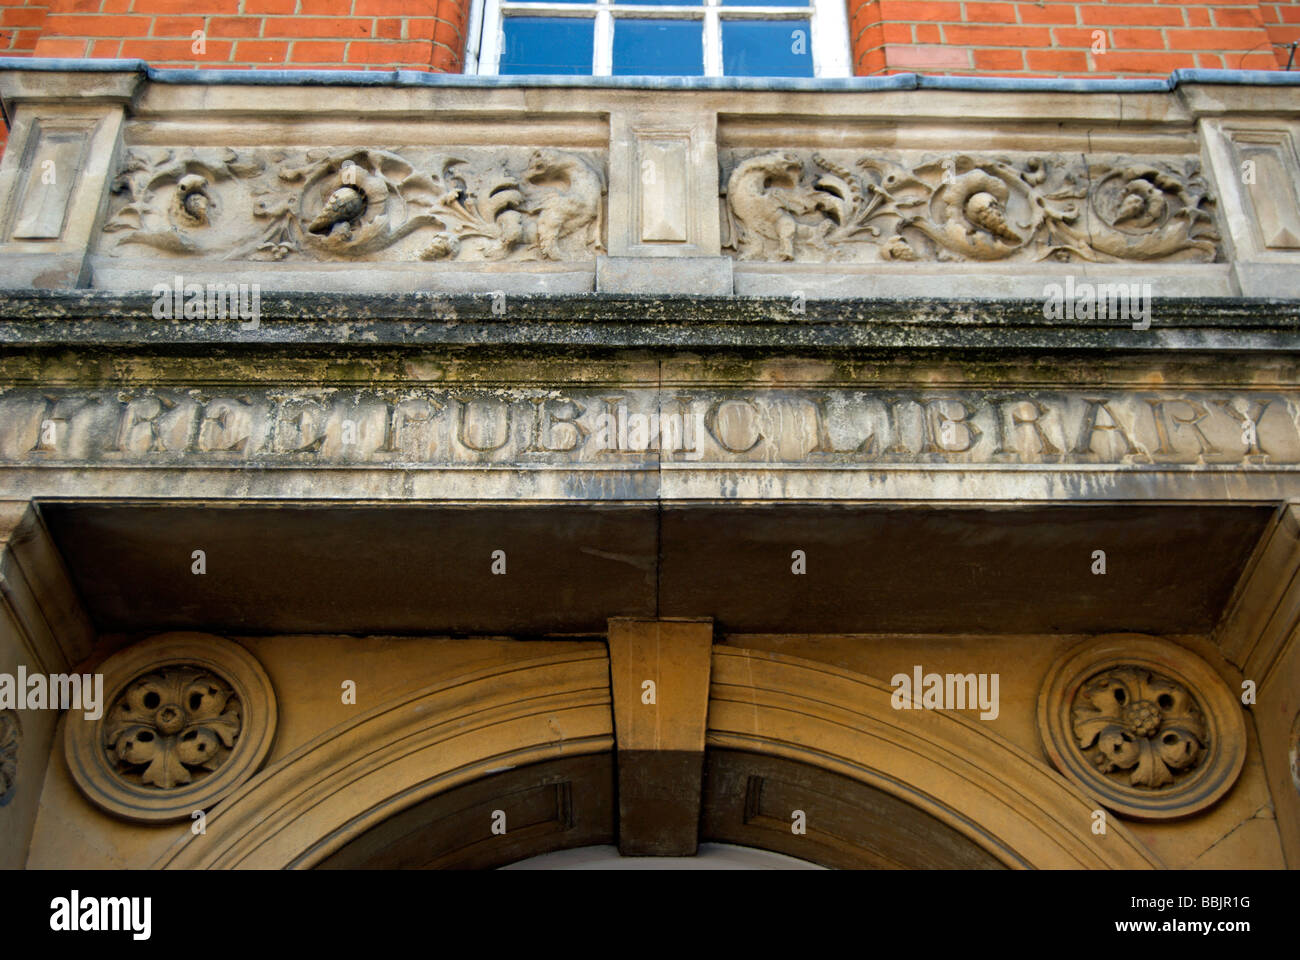 free public library inscribed above the entrance to the 1887 wimbledon library, southwest london, england - Stock Image